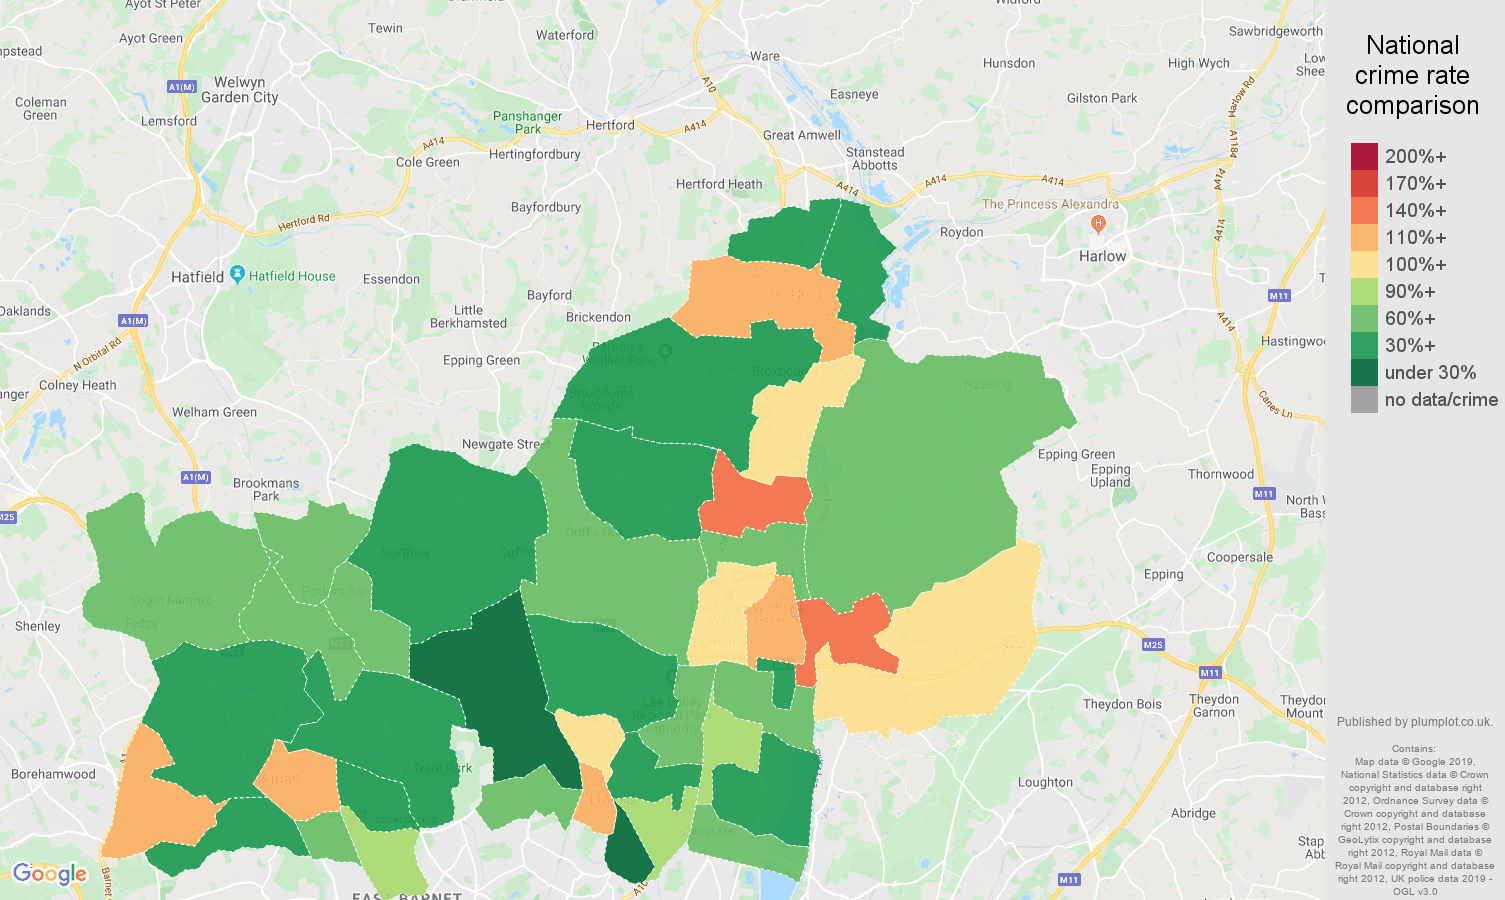 Enfield public order crime rate comparison map